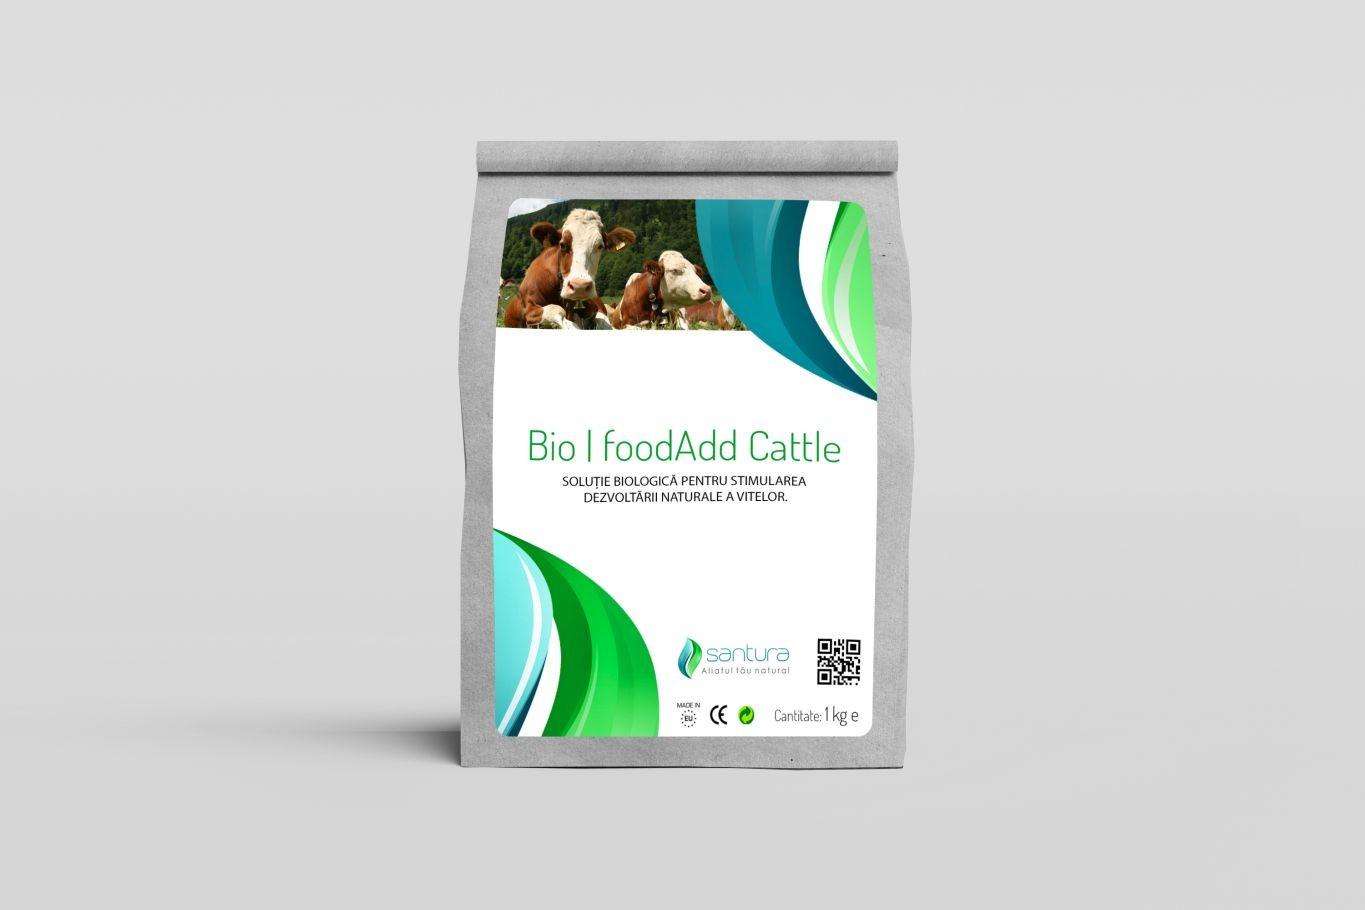 Bio|foodAdd Cattle